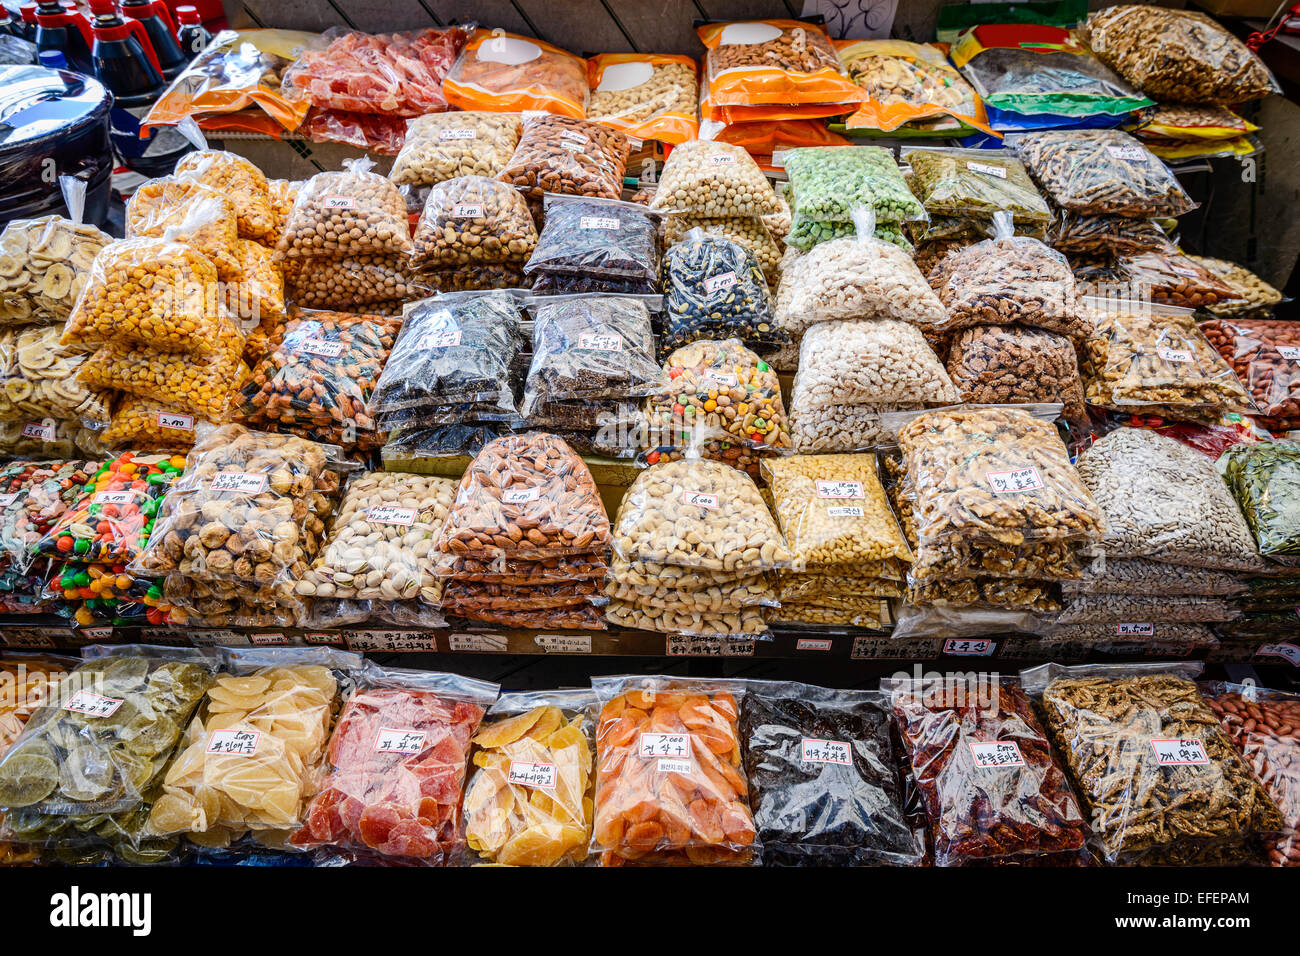 Packaged snacks at Gwangjang Market in Seoul, South Korea. - Stock Image